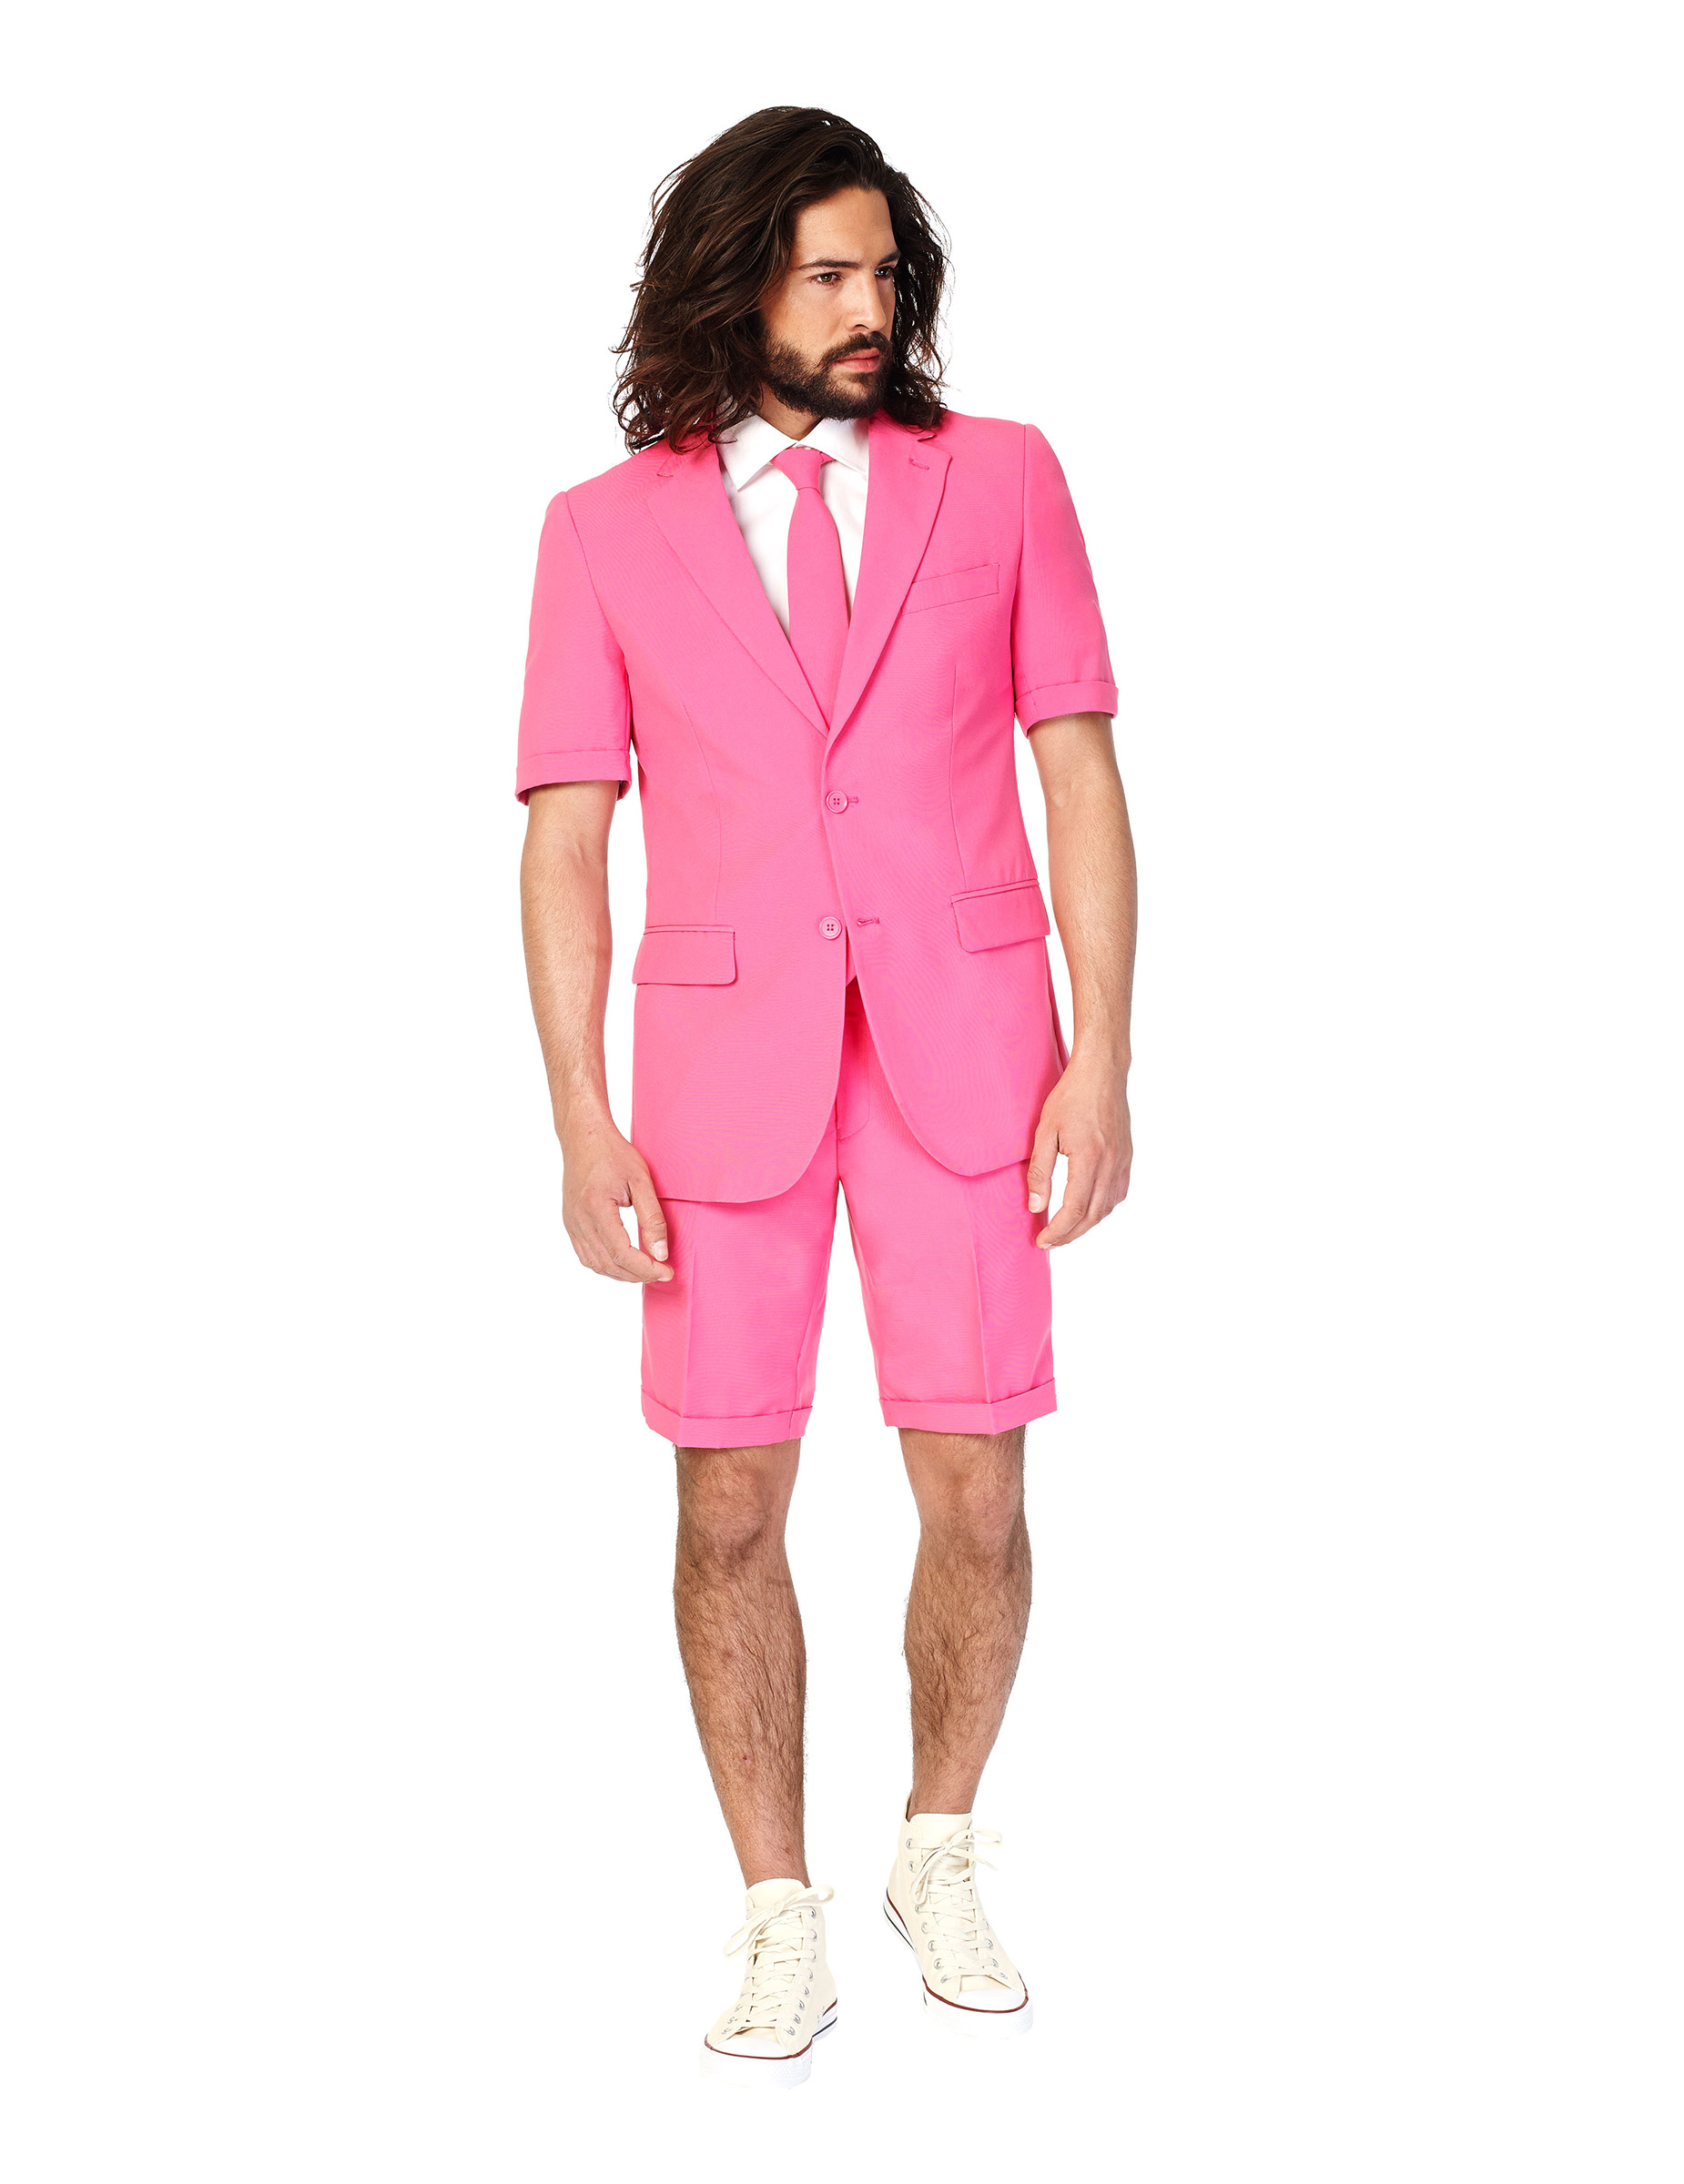 costume d 39 t mr pink homme opposuits deguise toi achat de d guisements adultes. Black Bedroom Furniture Sets. Home Design Ideas